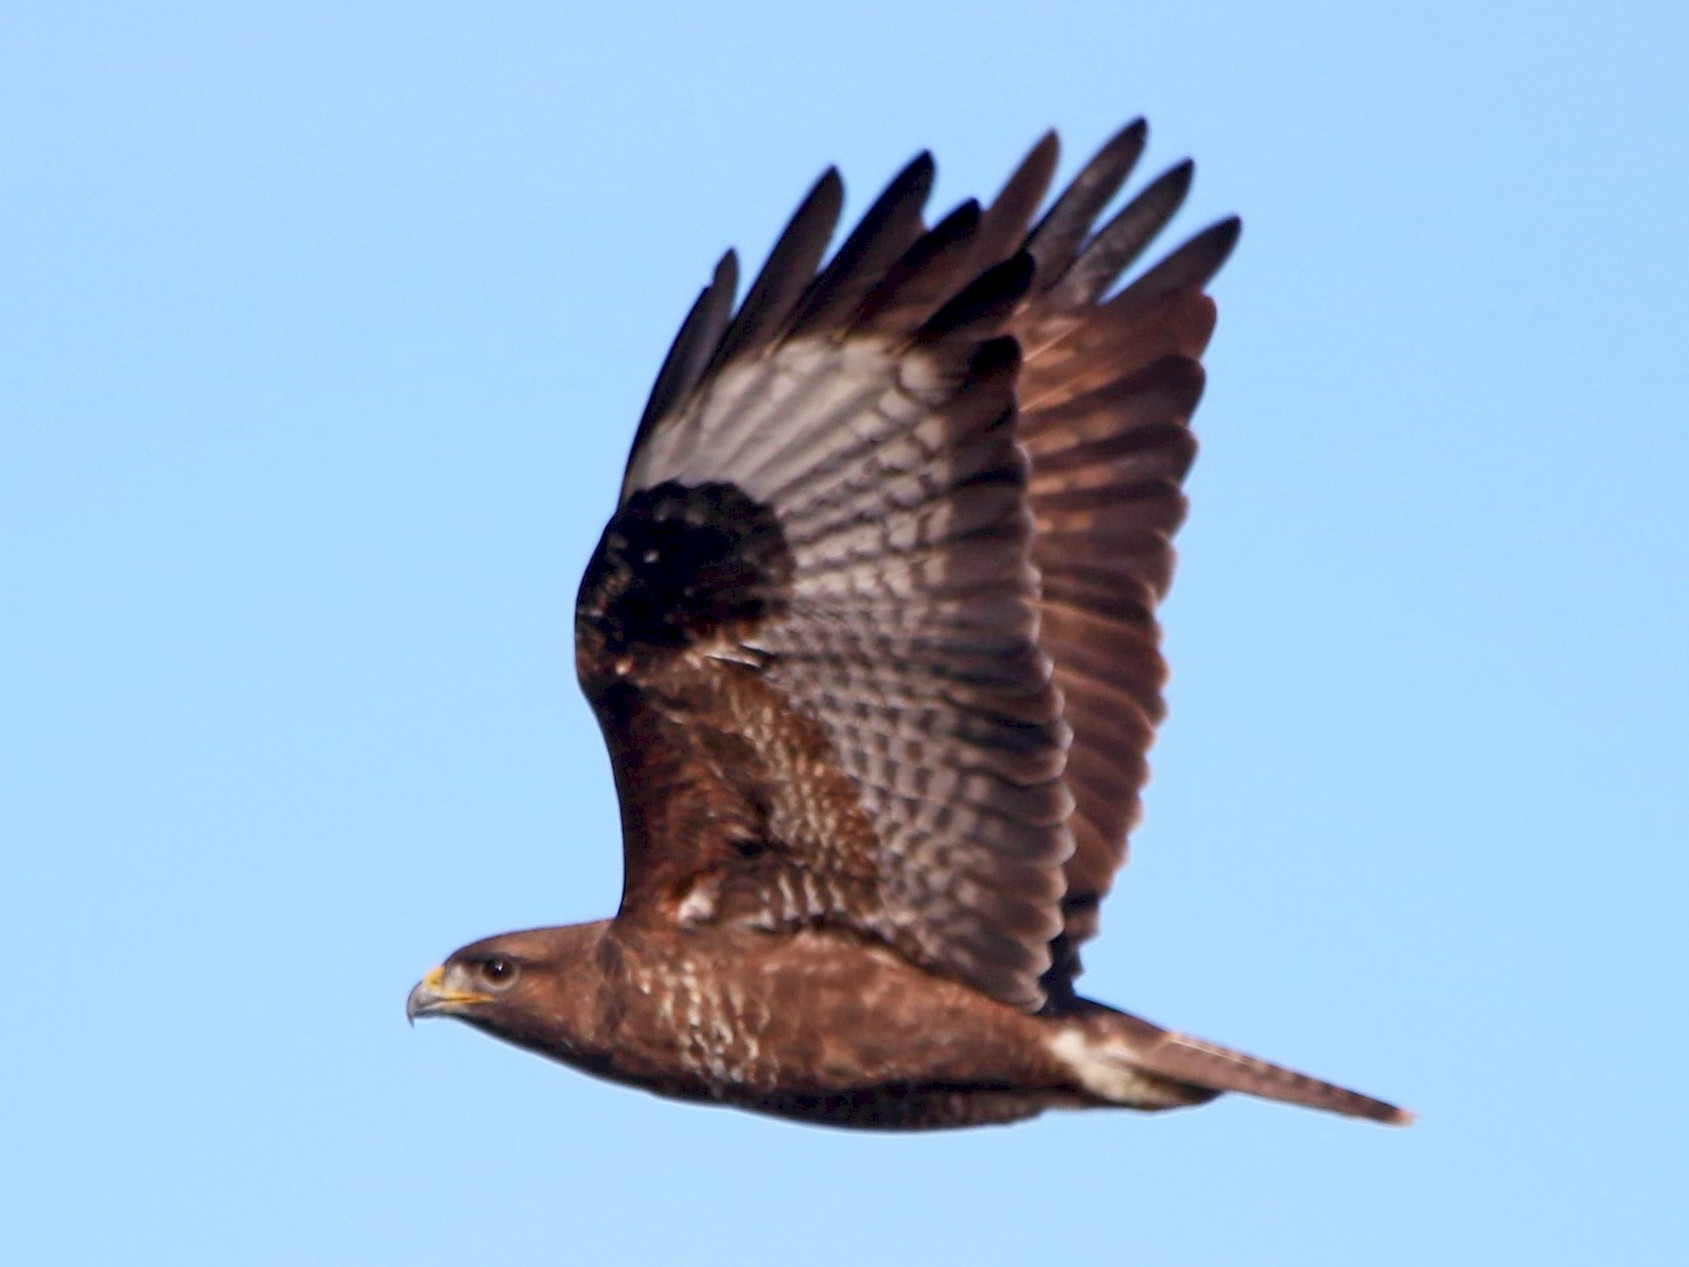 Common Buzzard - Alexandre Hespanhol Leitão